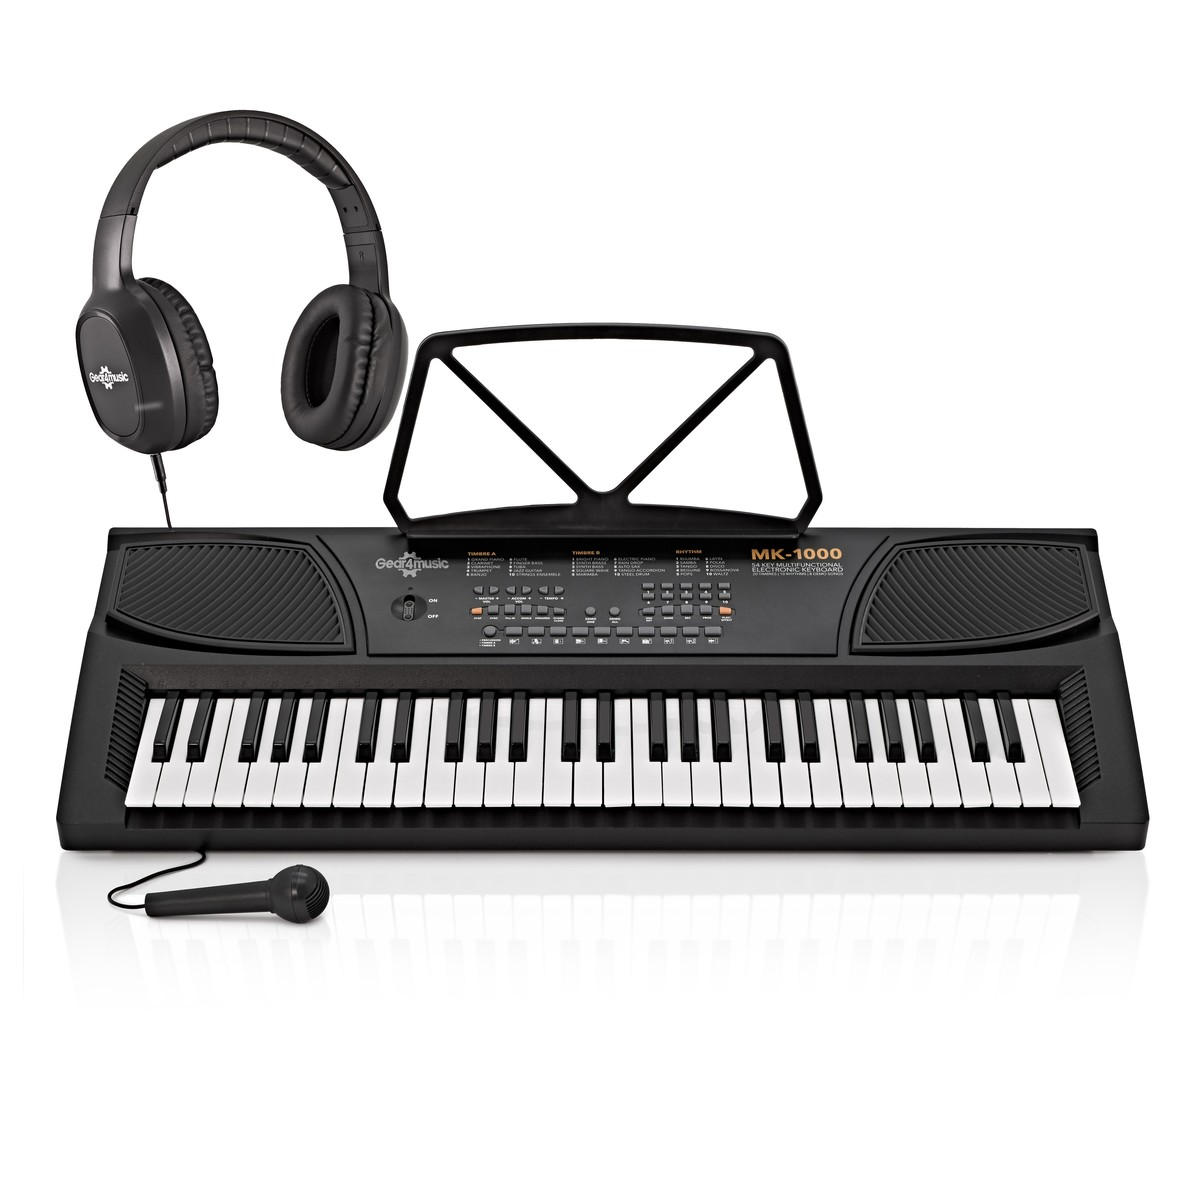 mk 1000 54 key portable keyboard by gear4music starter pack at gear4music. Black Bedroom Furniture Sets. Home Design Ideas